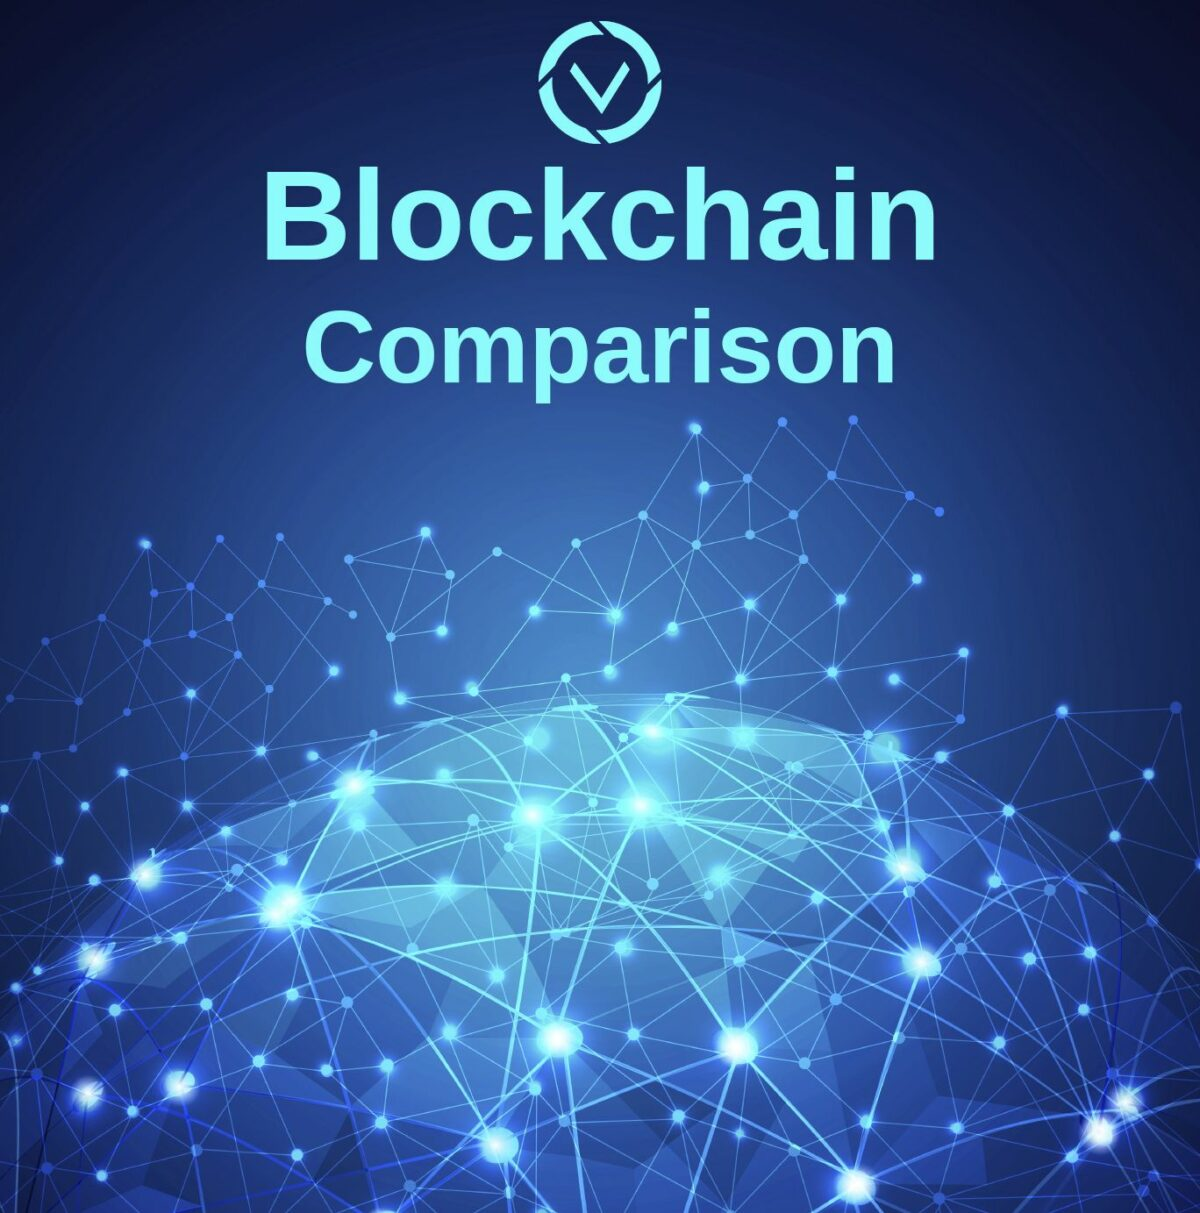 Blockchain Comparison